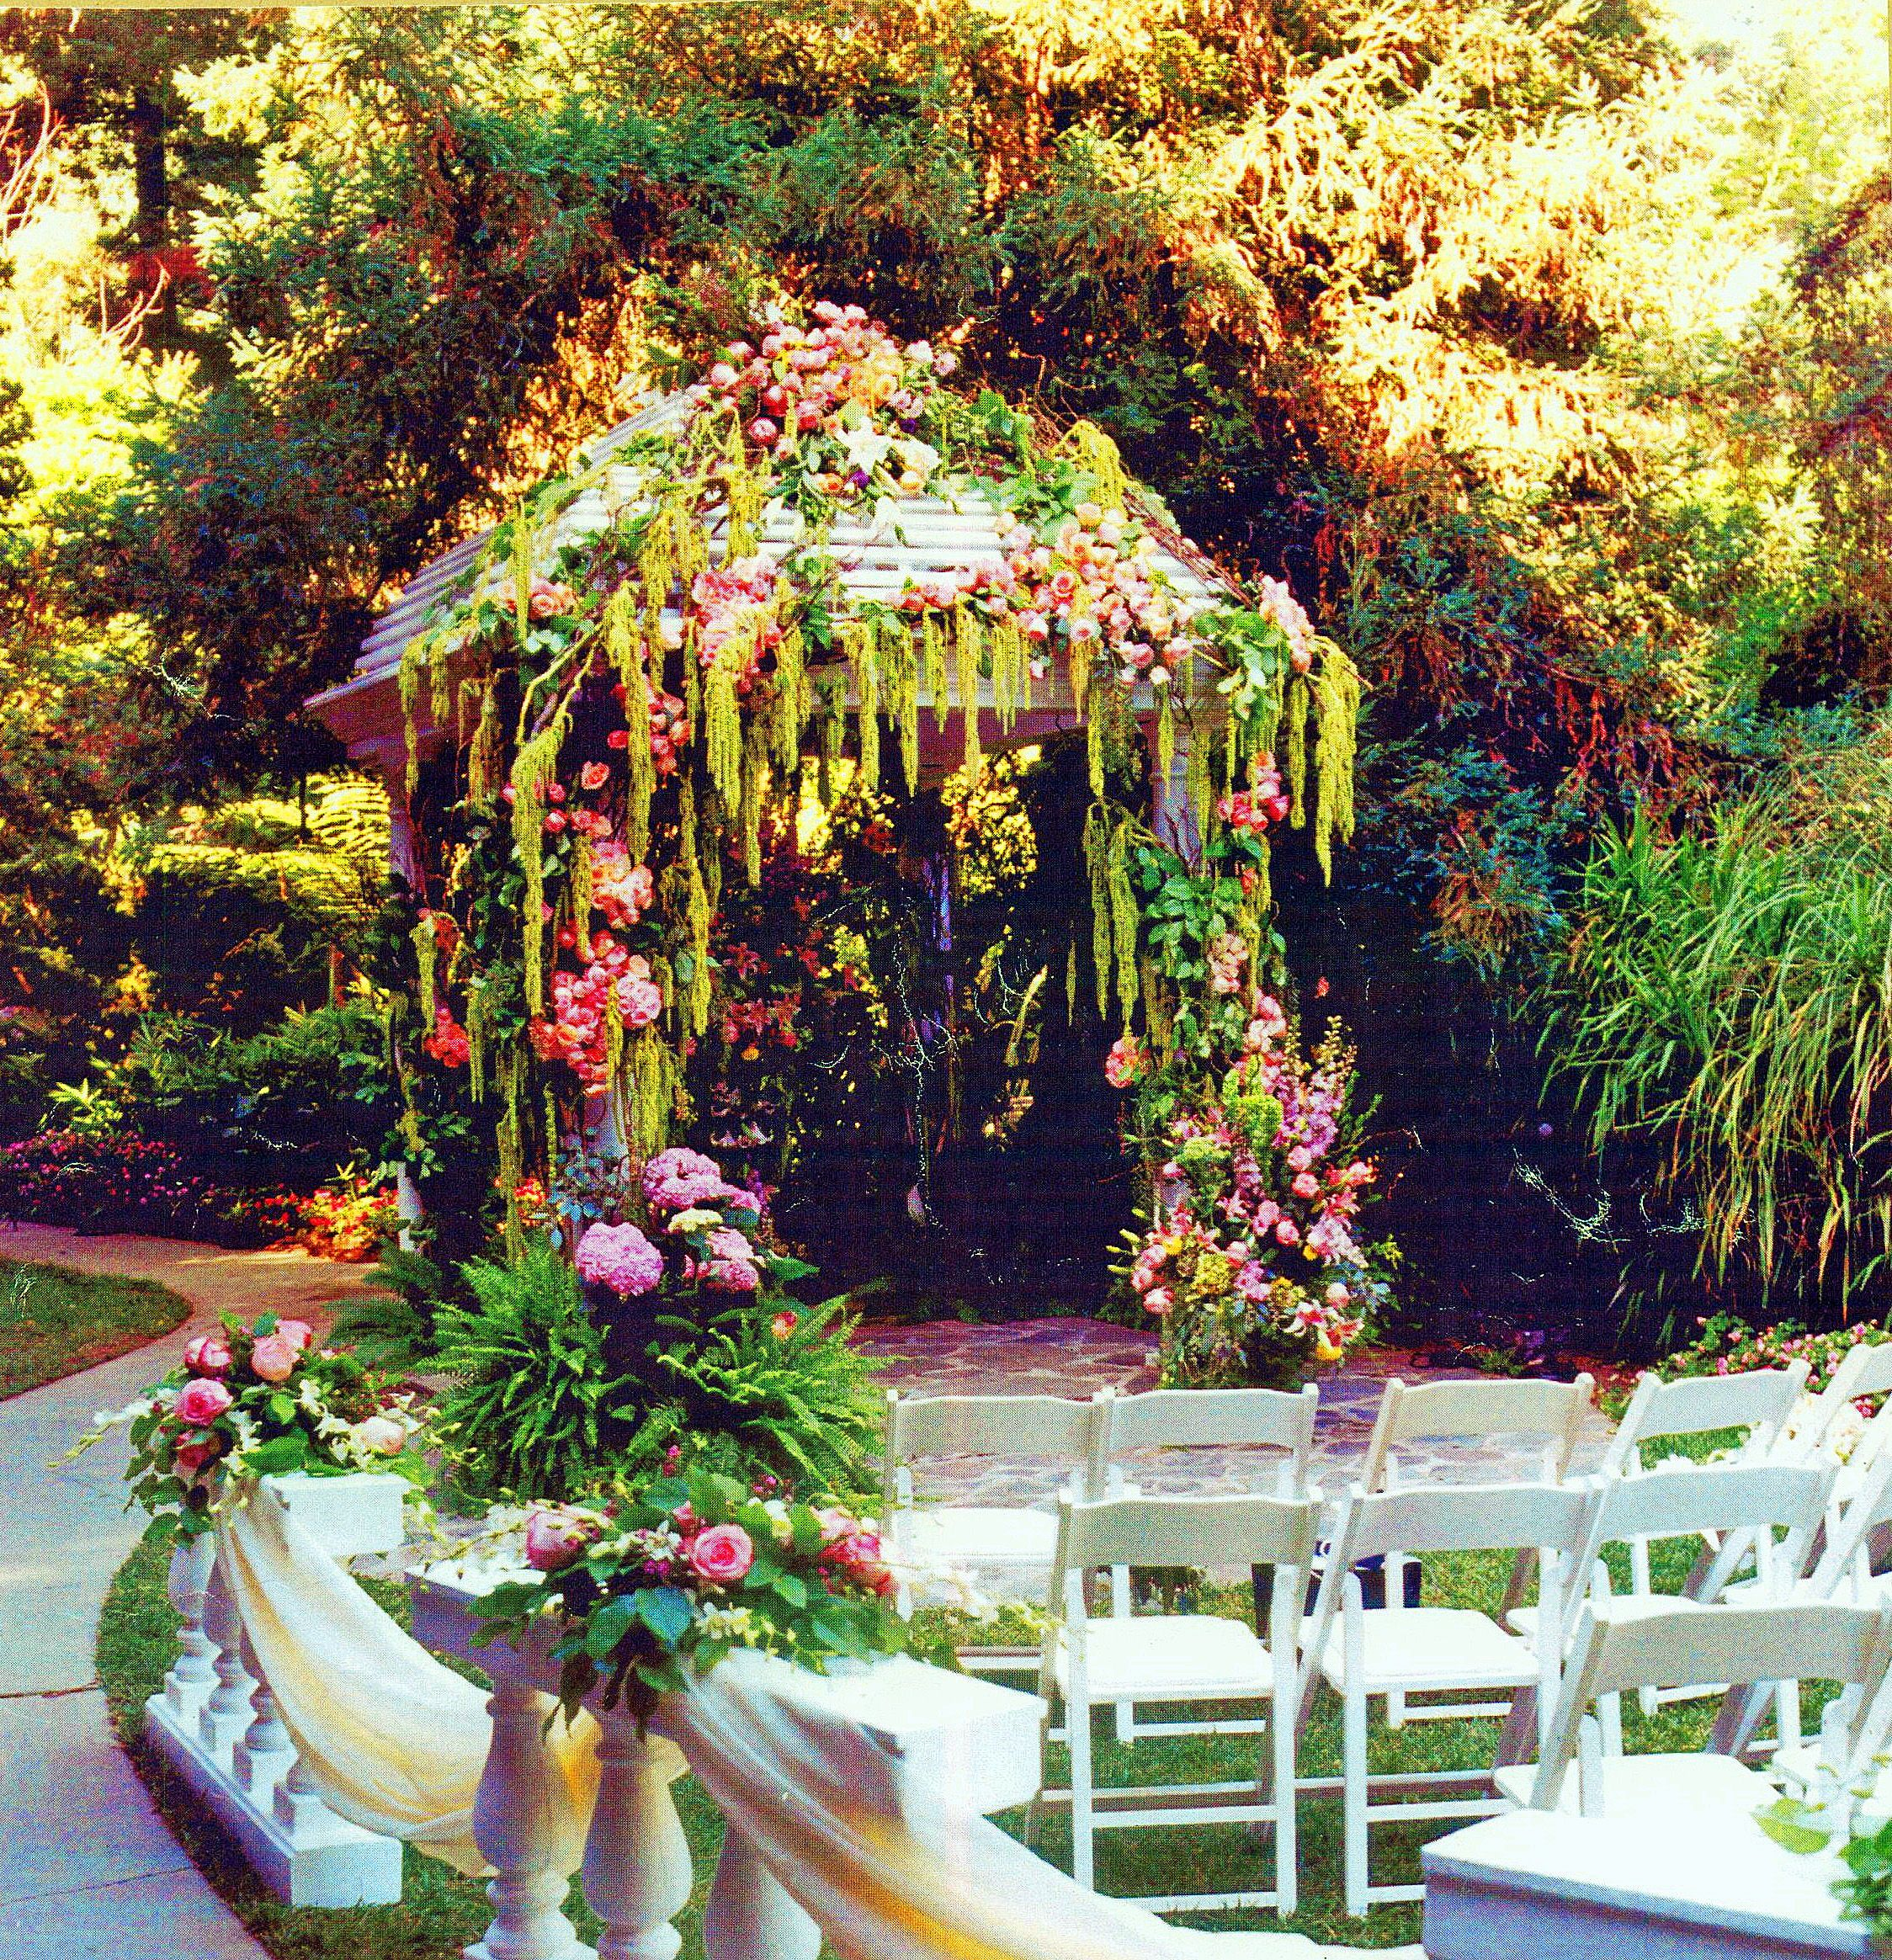 Southern style #gazebo with hanging #amaranthus #vine and #hydrangeas at the #HotelBelAir Los Angeles